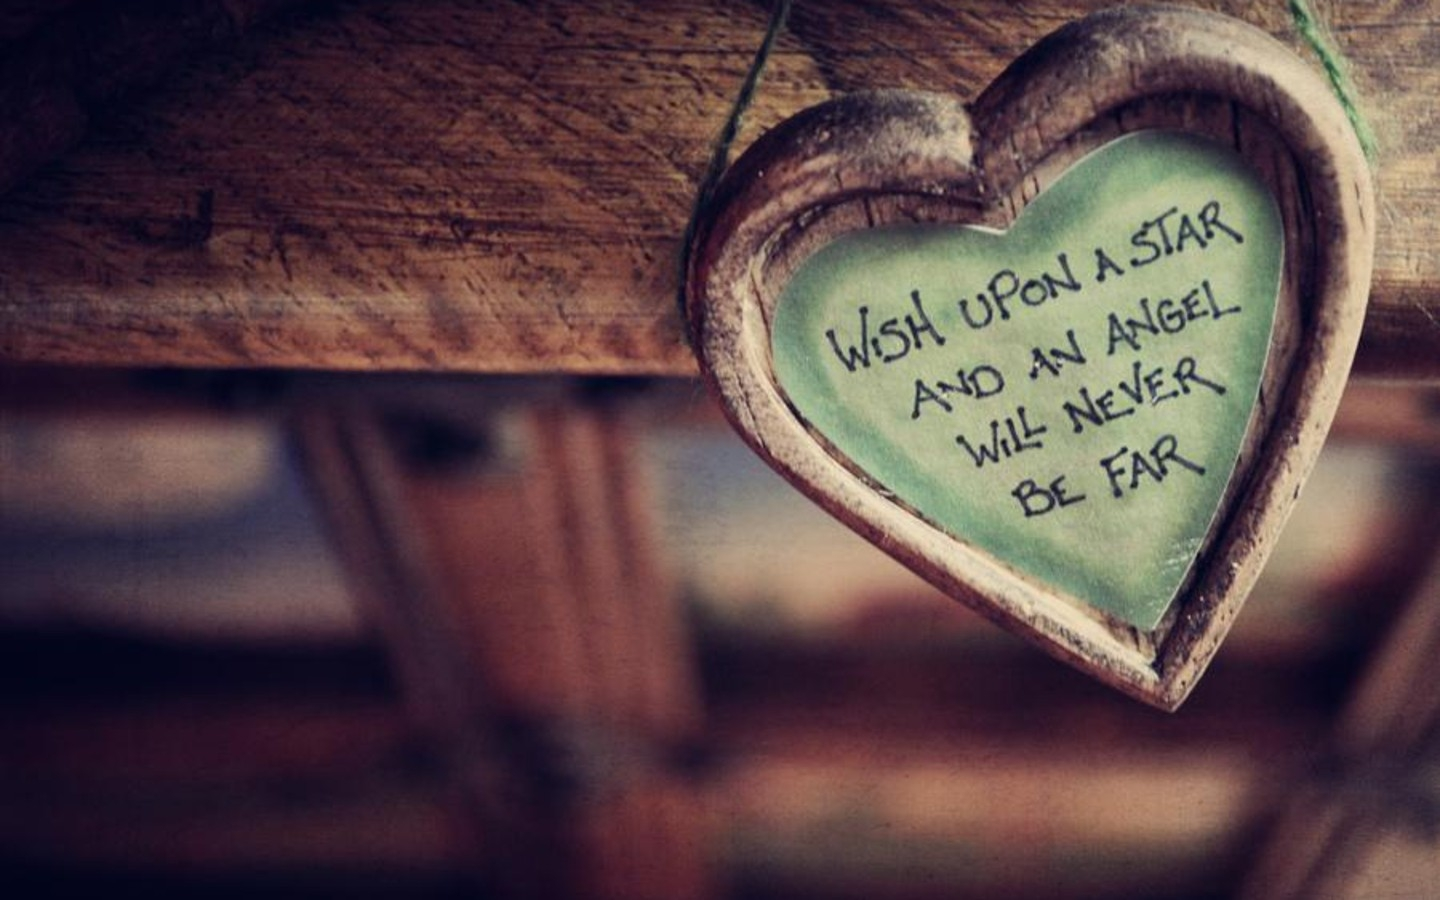 Wish You Happy Love Quotes For Facebook Timeline Cover - Nice Love Quotes For Facebook , HD Wallpaper & Backgrounds